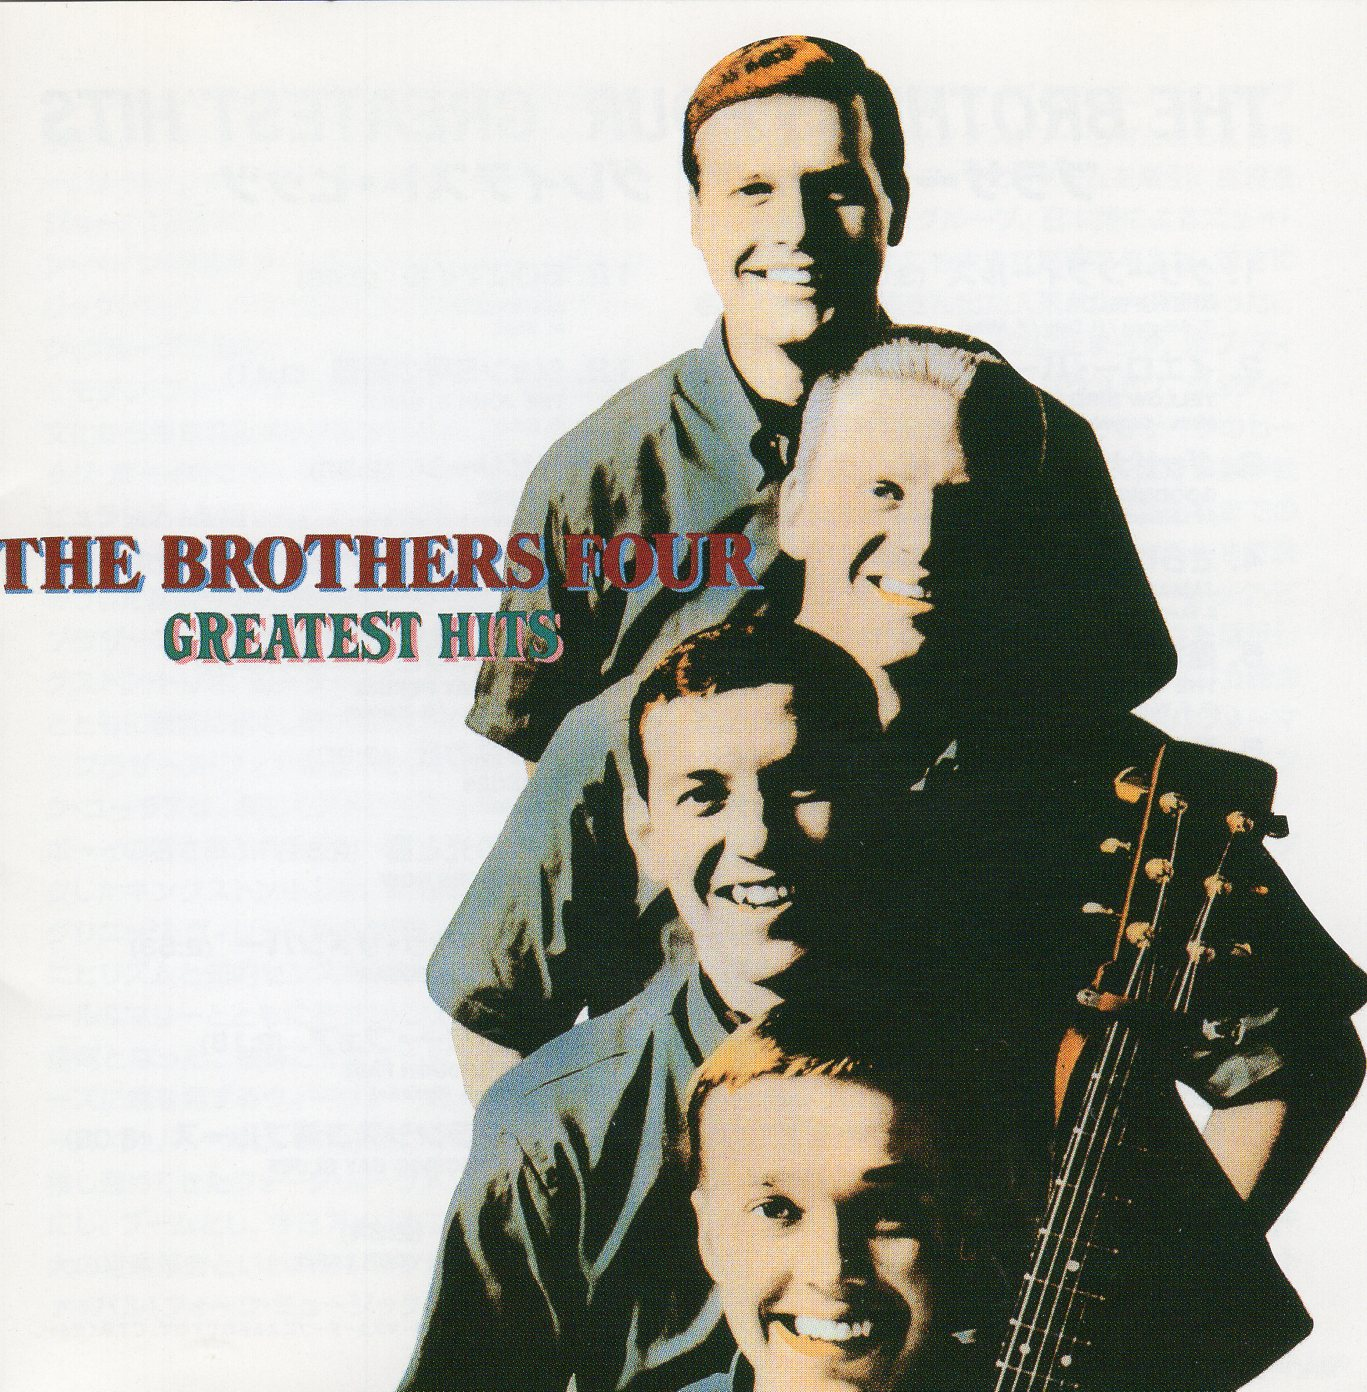 """The Bothers Four Greatest Hits"" The Bothers Four"